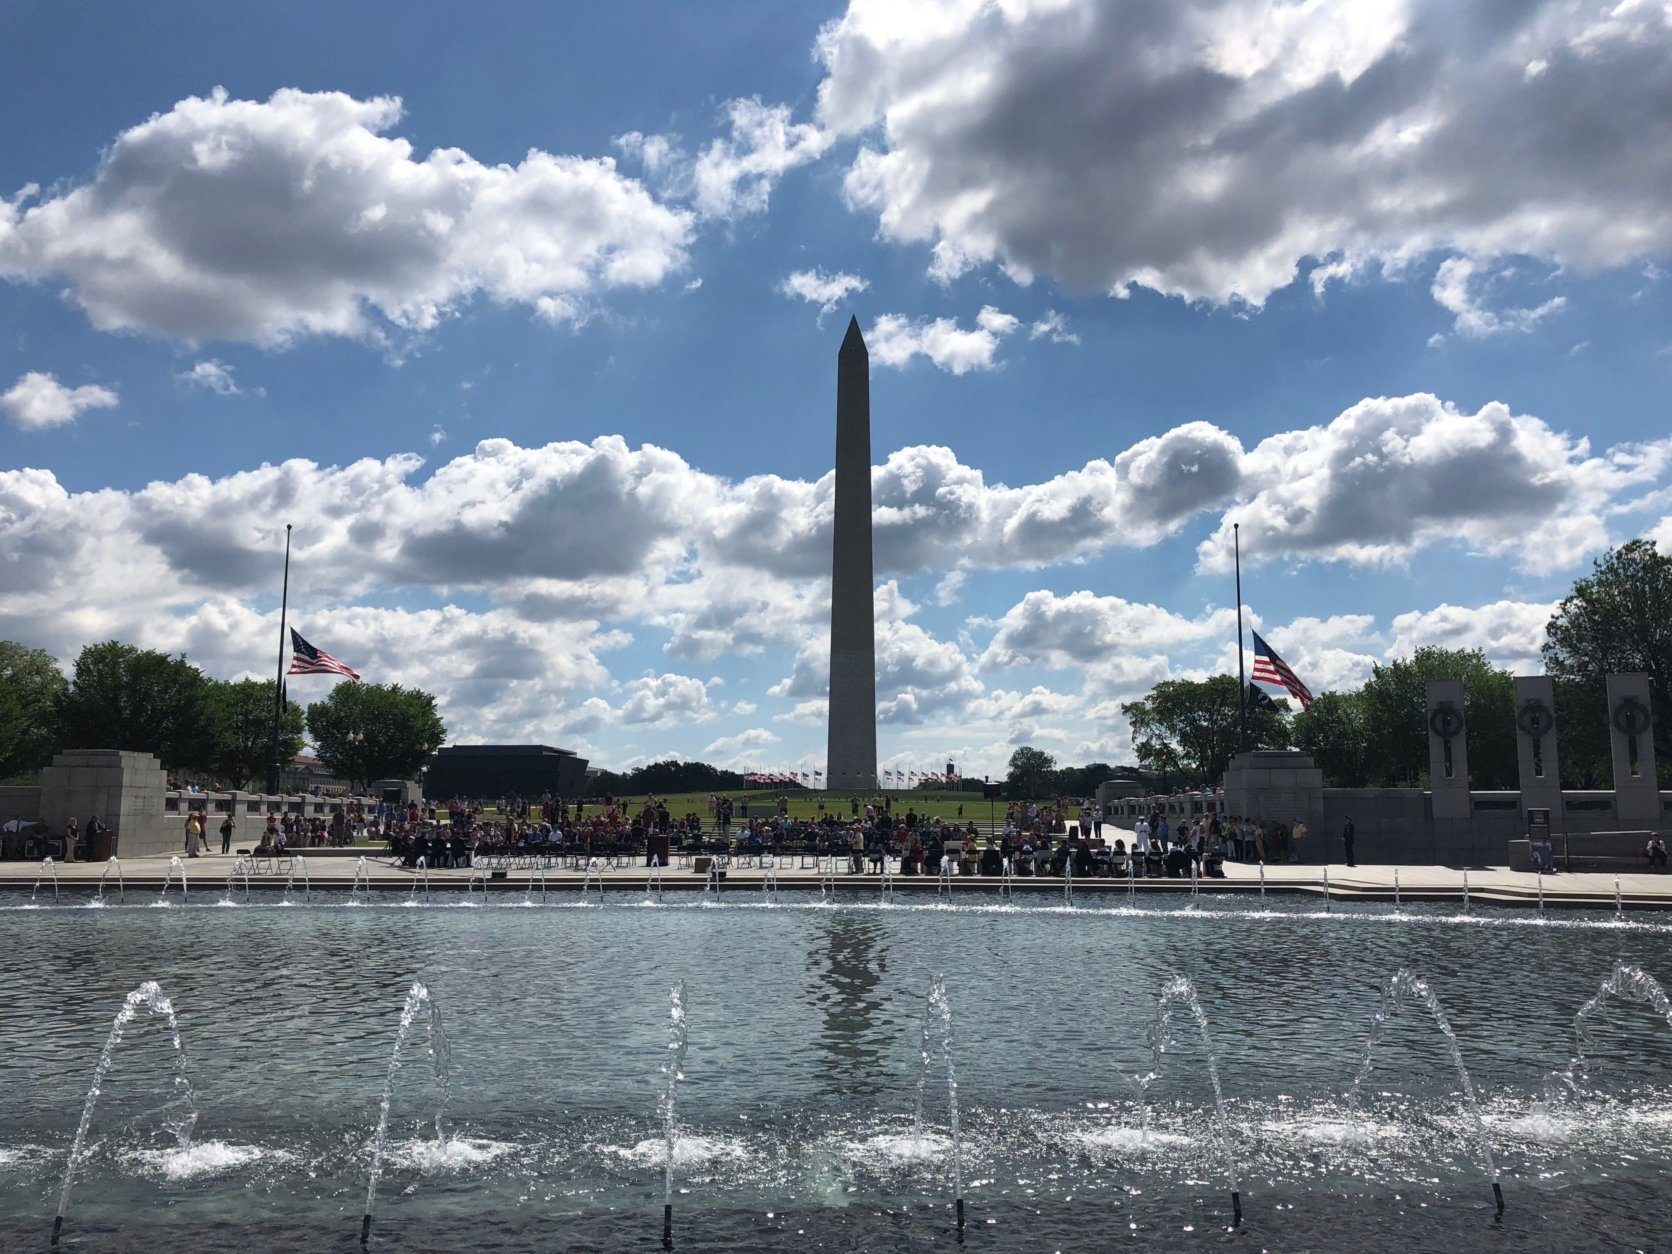 A crowd looks on at the World War II Memorial as veterans lay honorary wreaths on Monday, May 27, 2019. (WTOP/Keara Dowd)